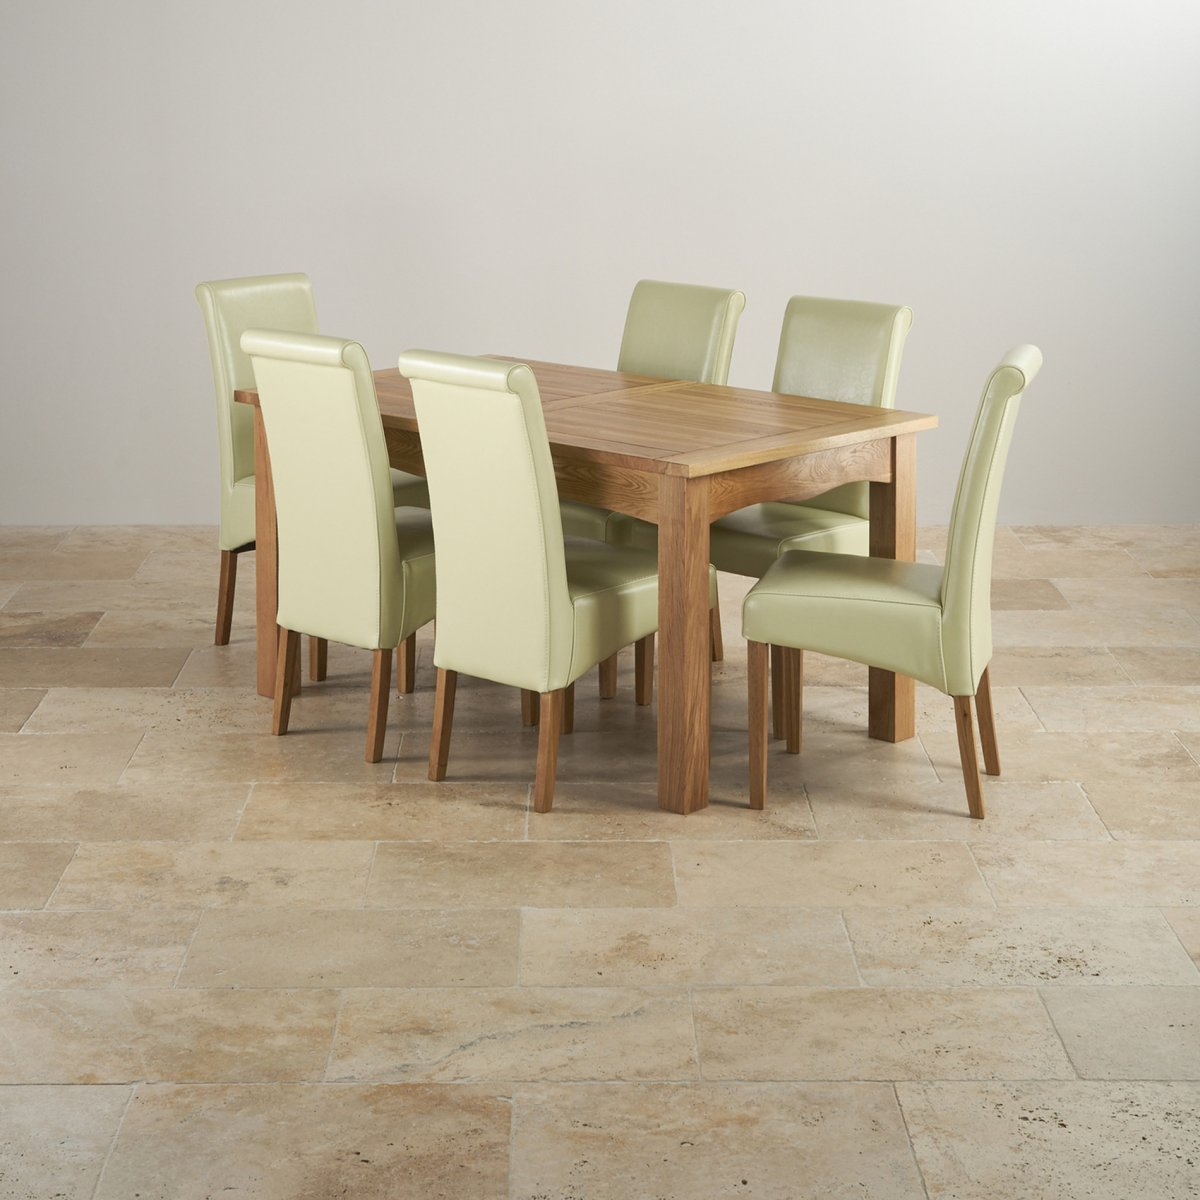 Cairo Solid Oak 5ft Dining Table With 6 Cream Chairs